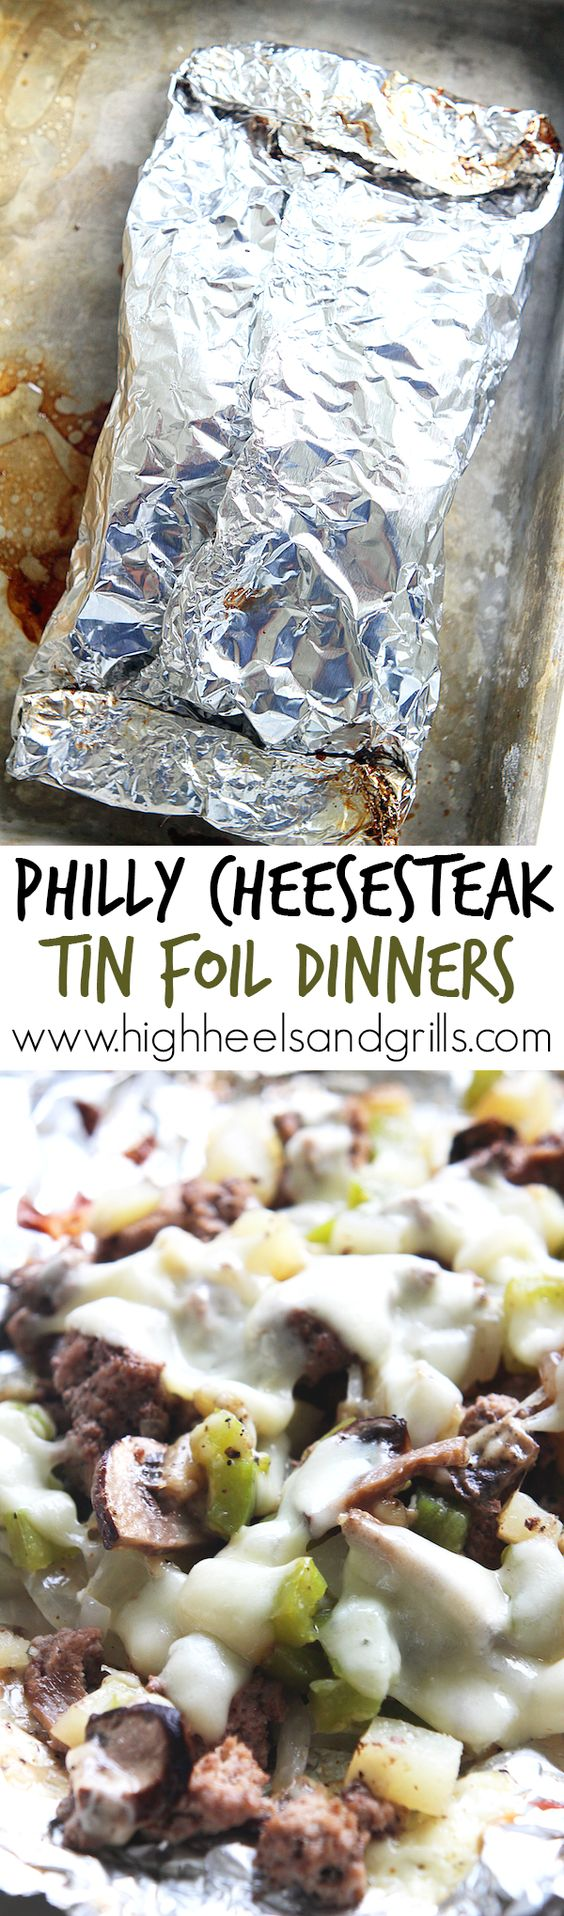 Philly Cheesesteak Packet